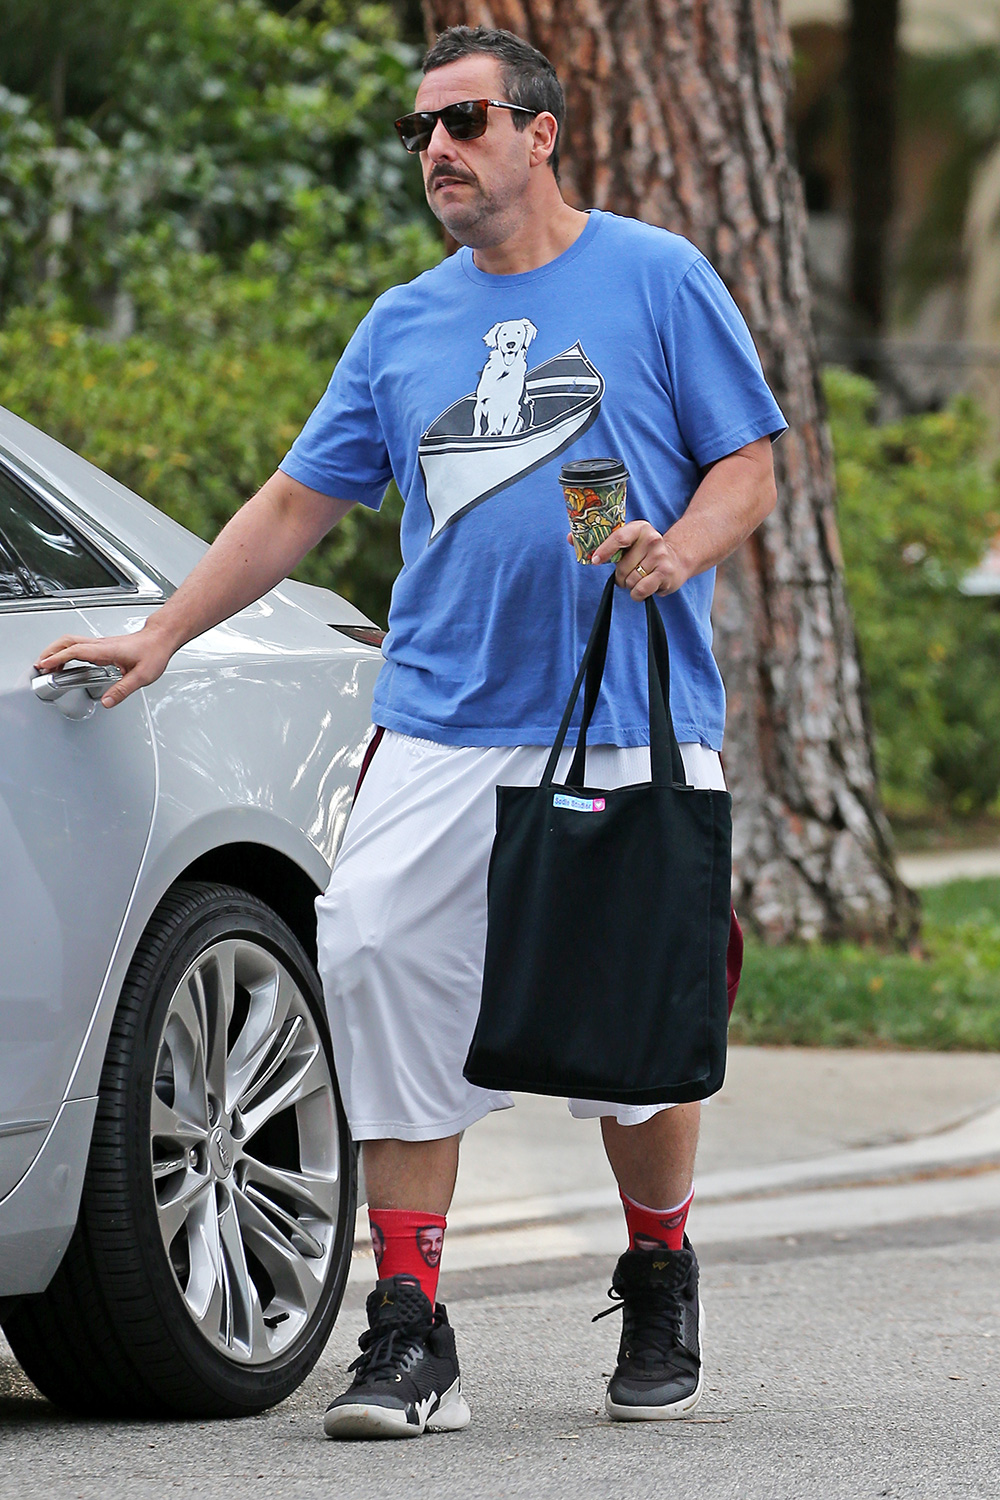 Adam Sandler wears 'Adam Sandler socks' while out and about in Beverly Hills, CA